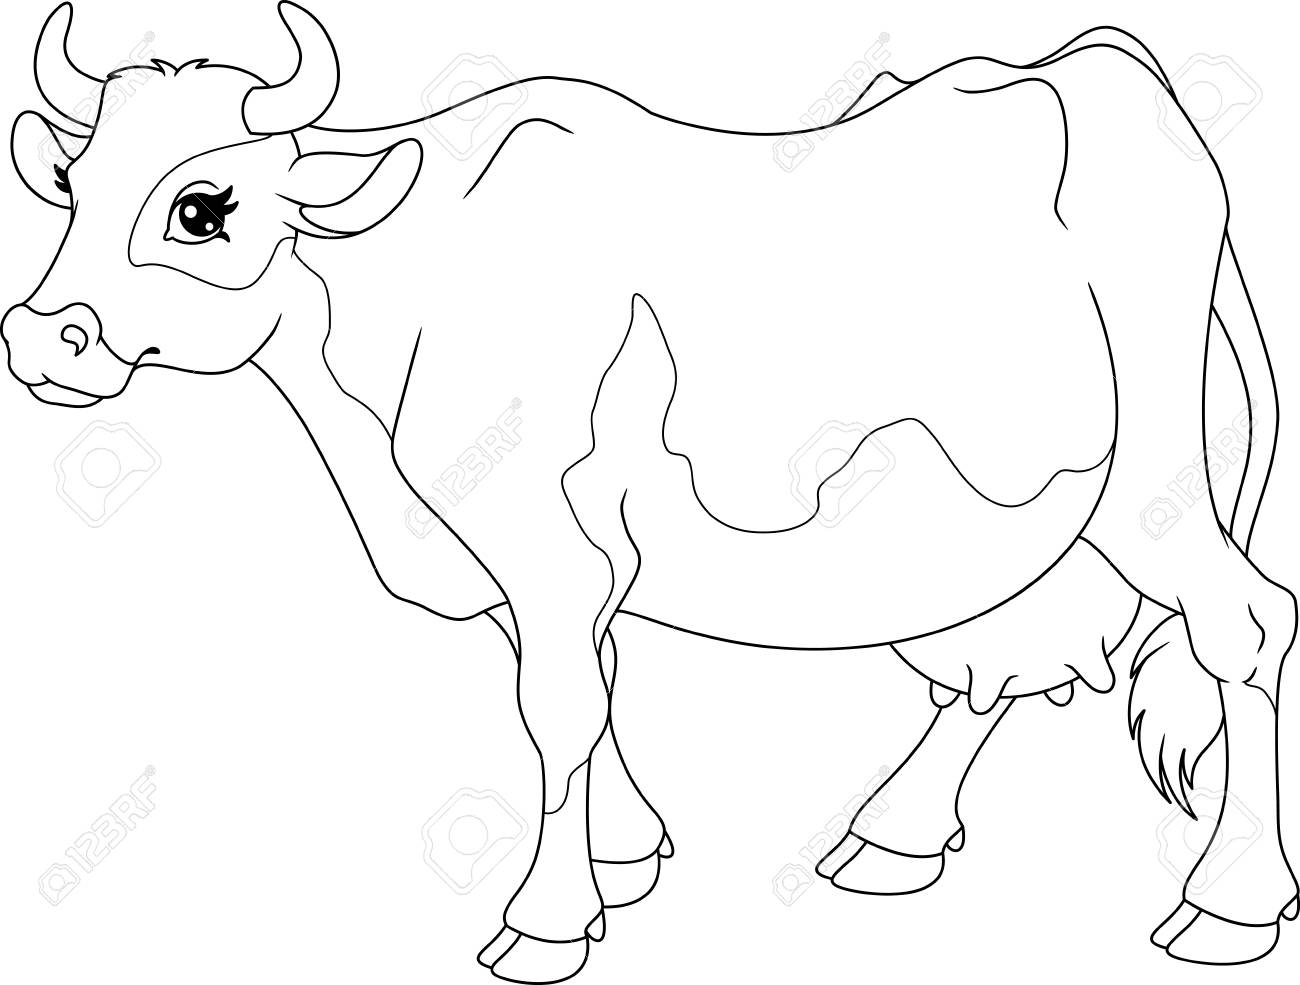 Cow Coloring Page Royalty Free Cliparts, Vectors, And Stock ...